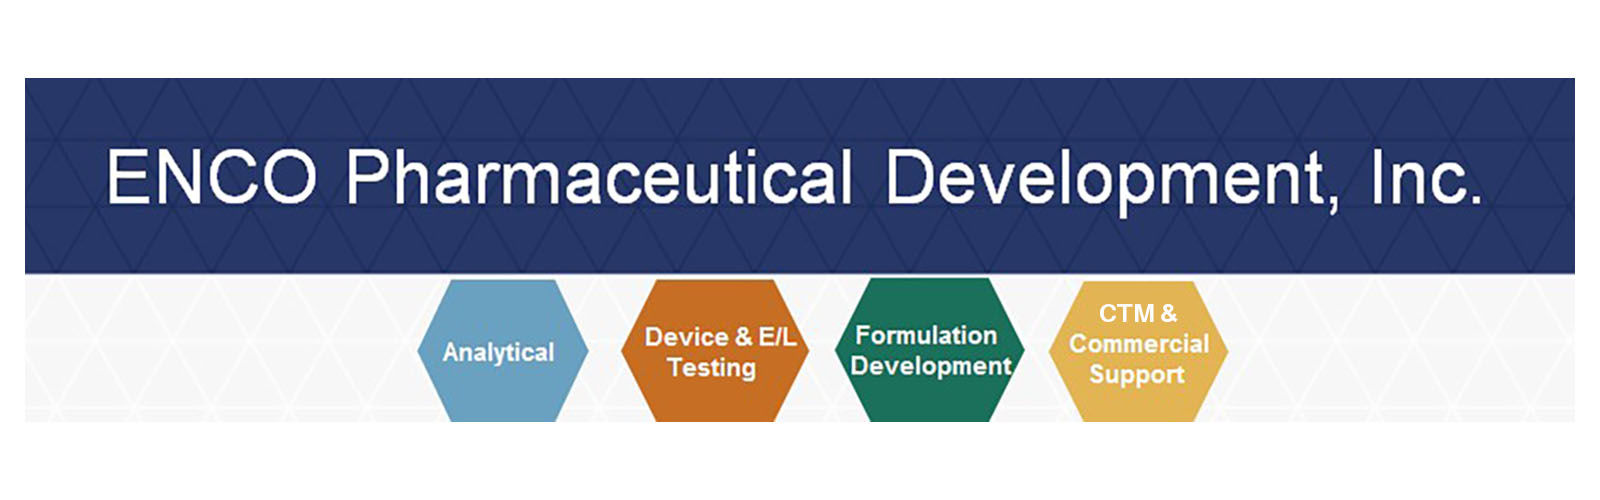 ENCO Pharmaceutical Development, Inc.